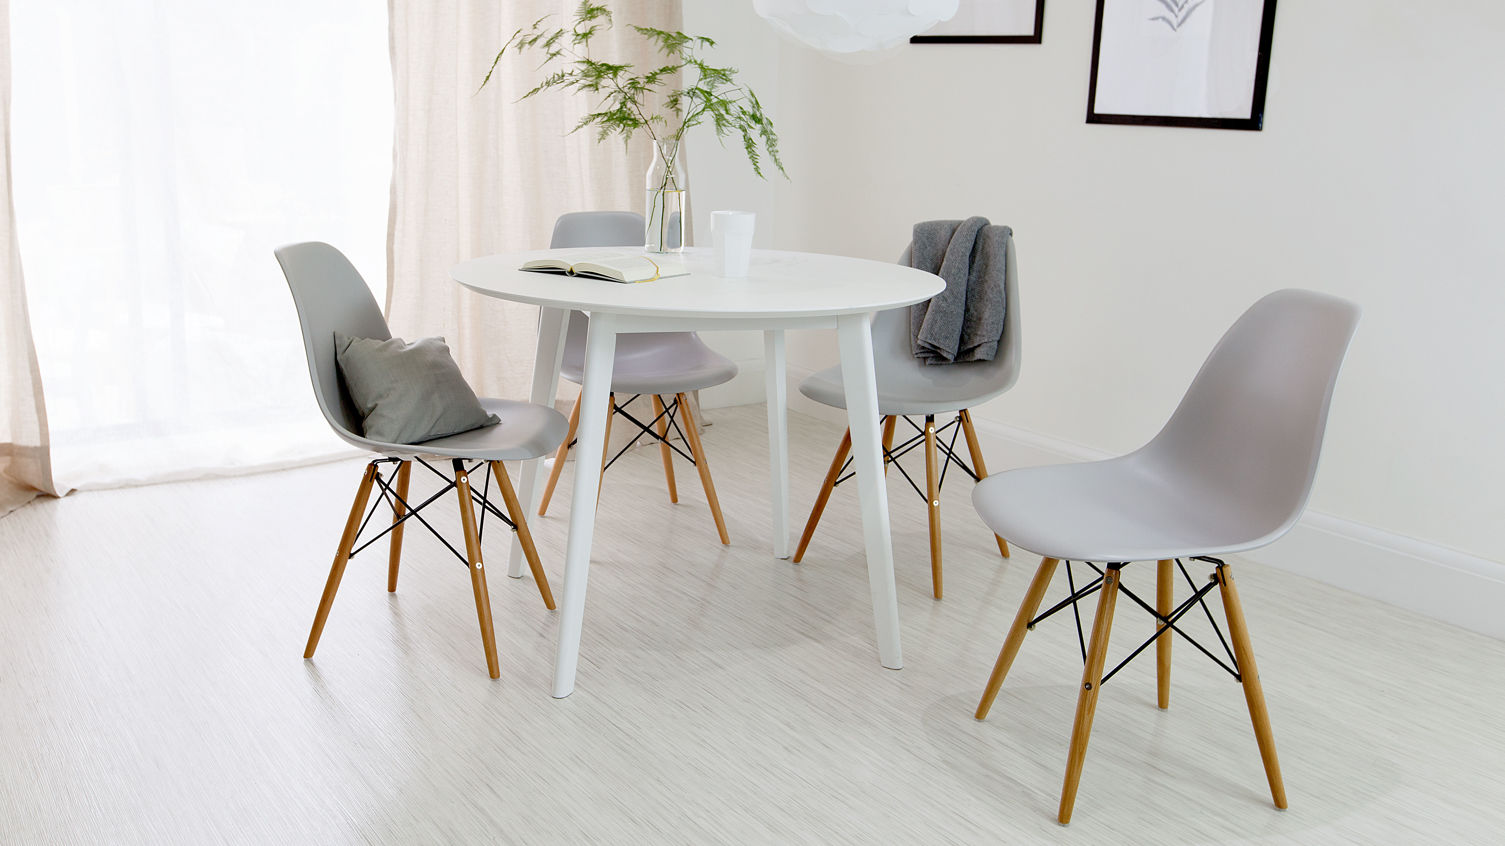 Eames Style Dining Table And Chairs Unique And Modern Interiors With Danetti